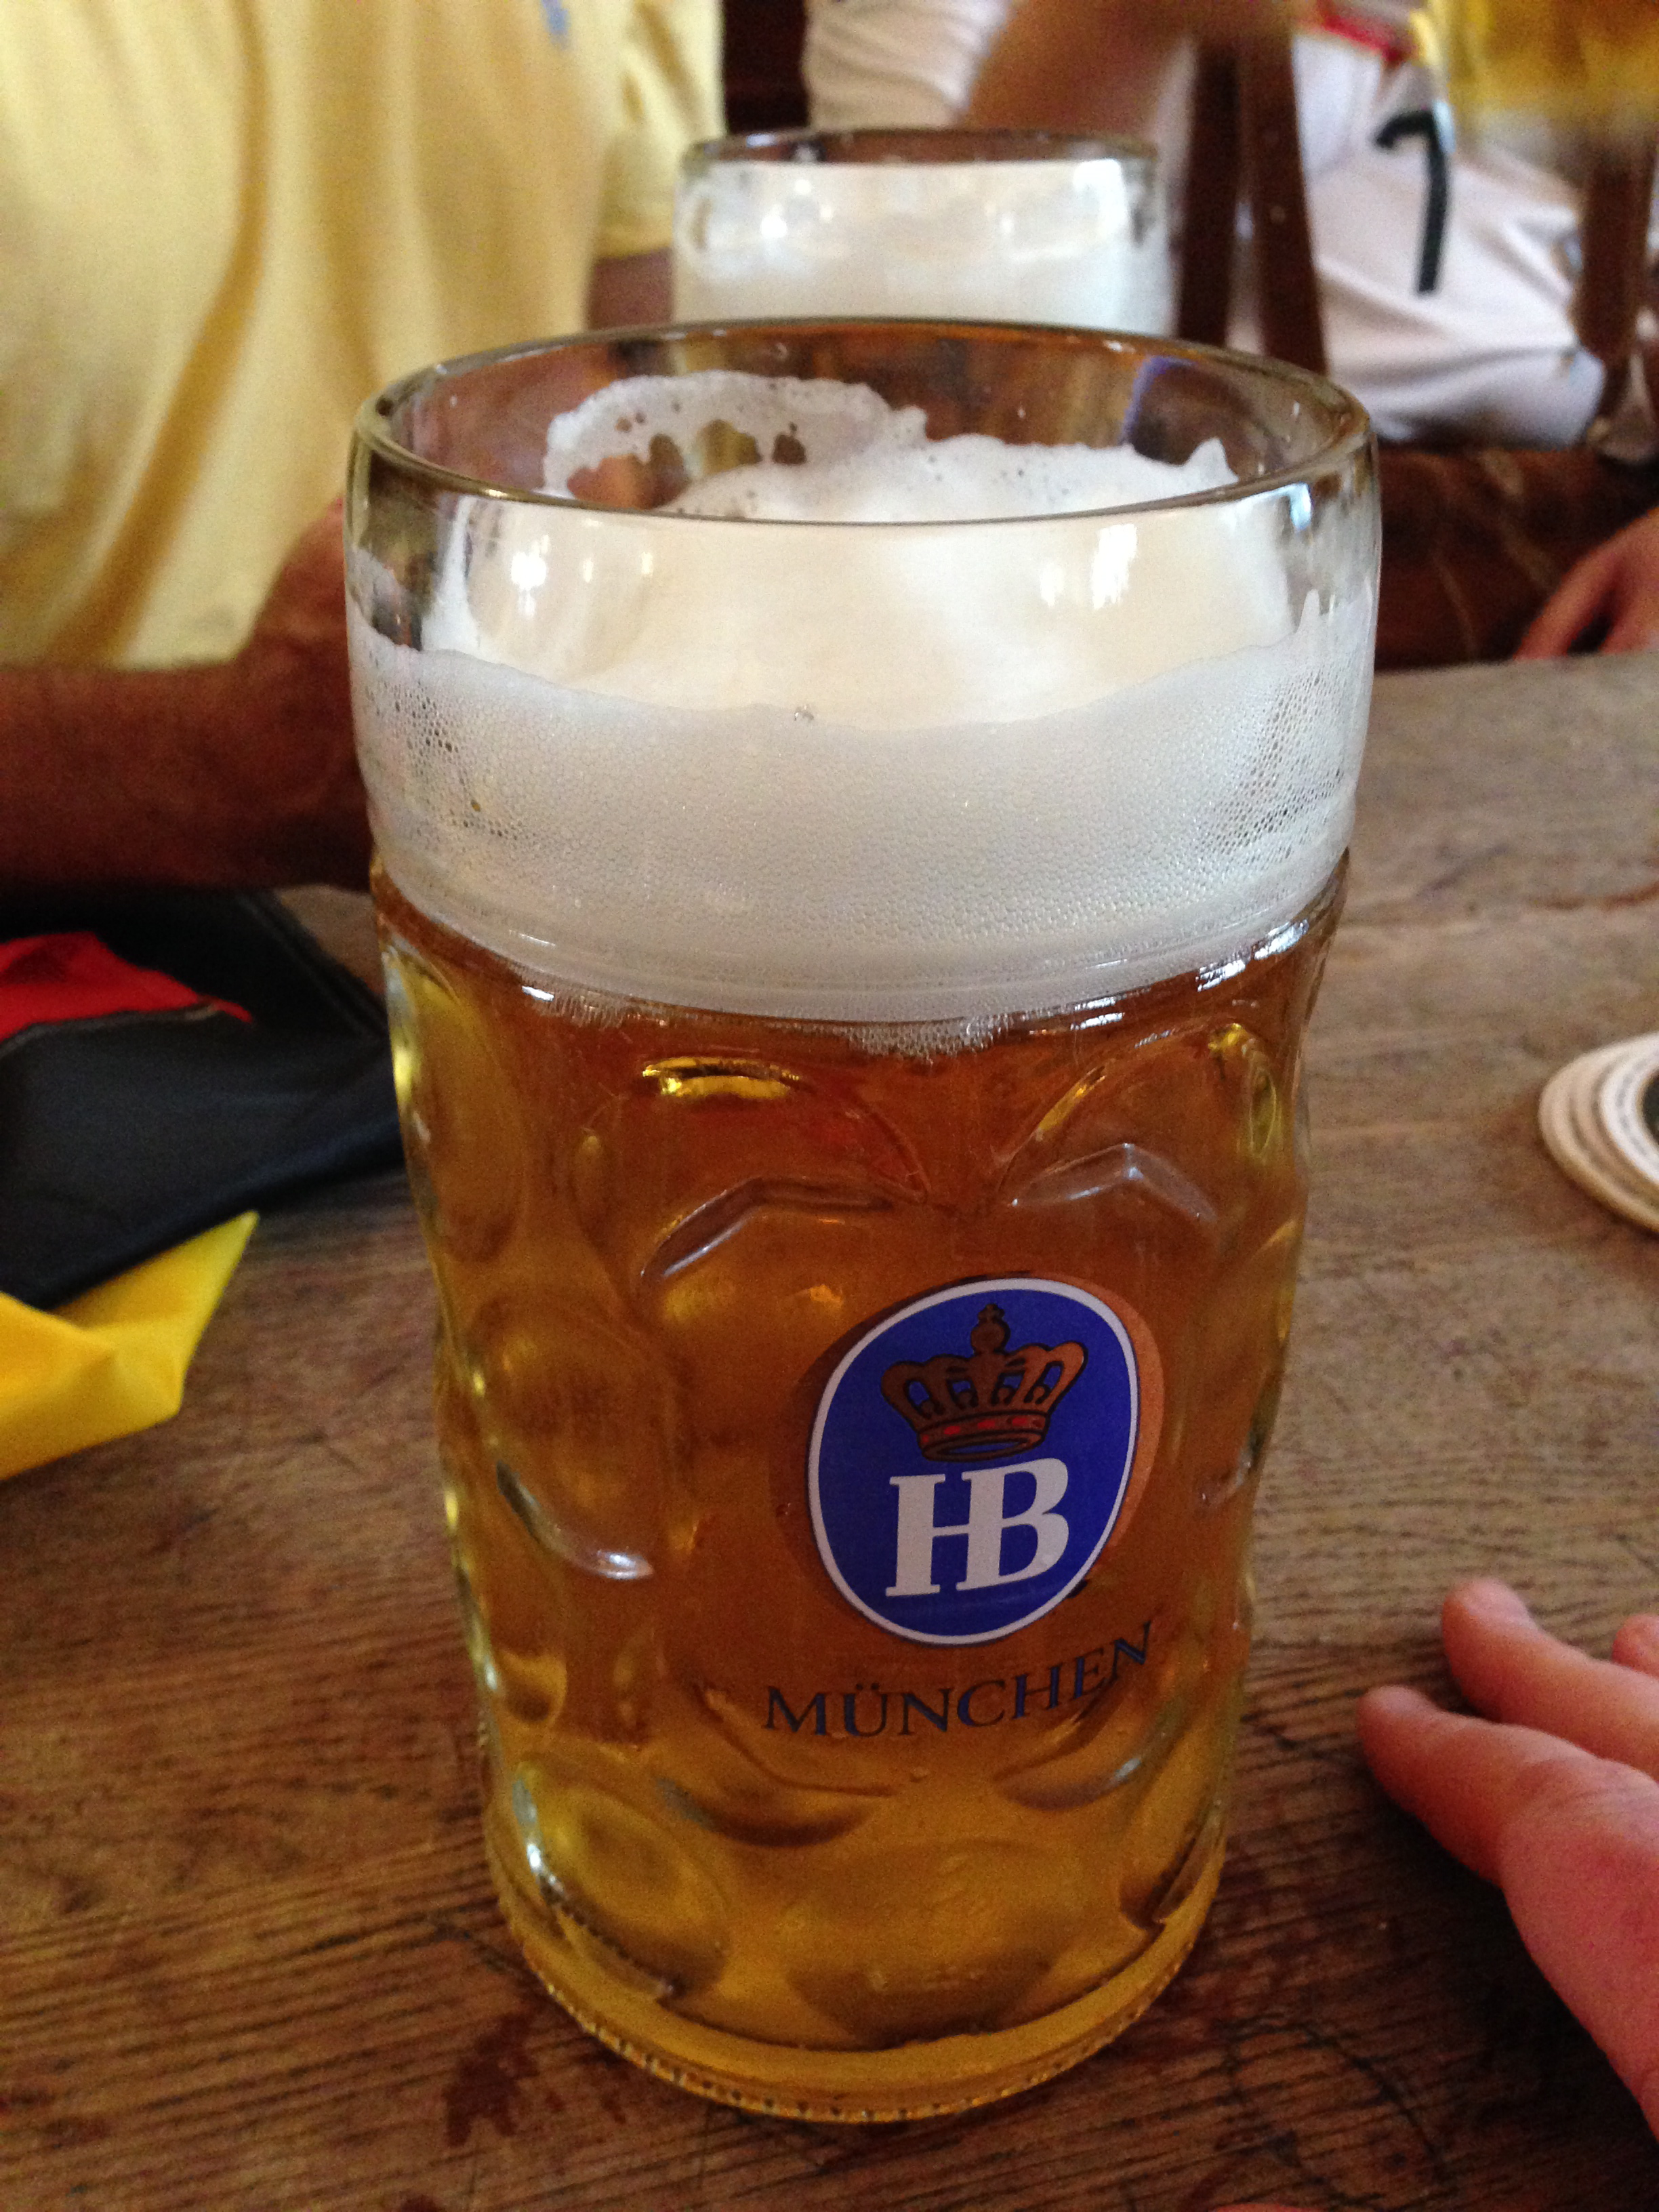 comparing the drinking age and alcohol laws between and liter of beer at the hofbräuhaus one of the oldest beer halls in munich built in 1589